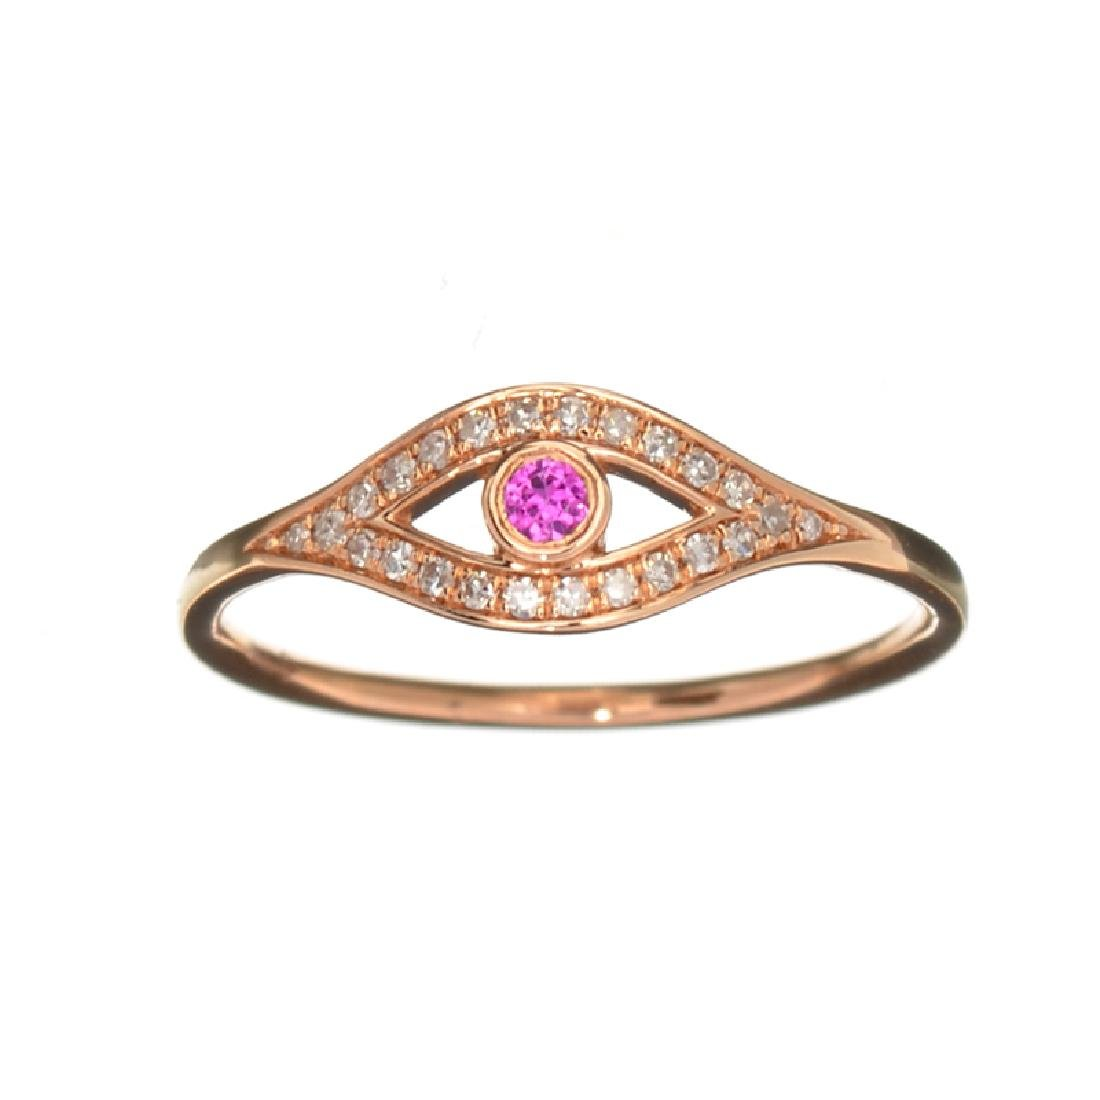 APP: 0.8k Fine Jewelry 14KT Gold, 0.04CT Ruby And